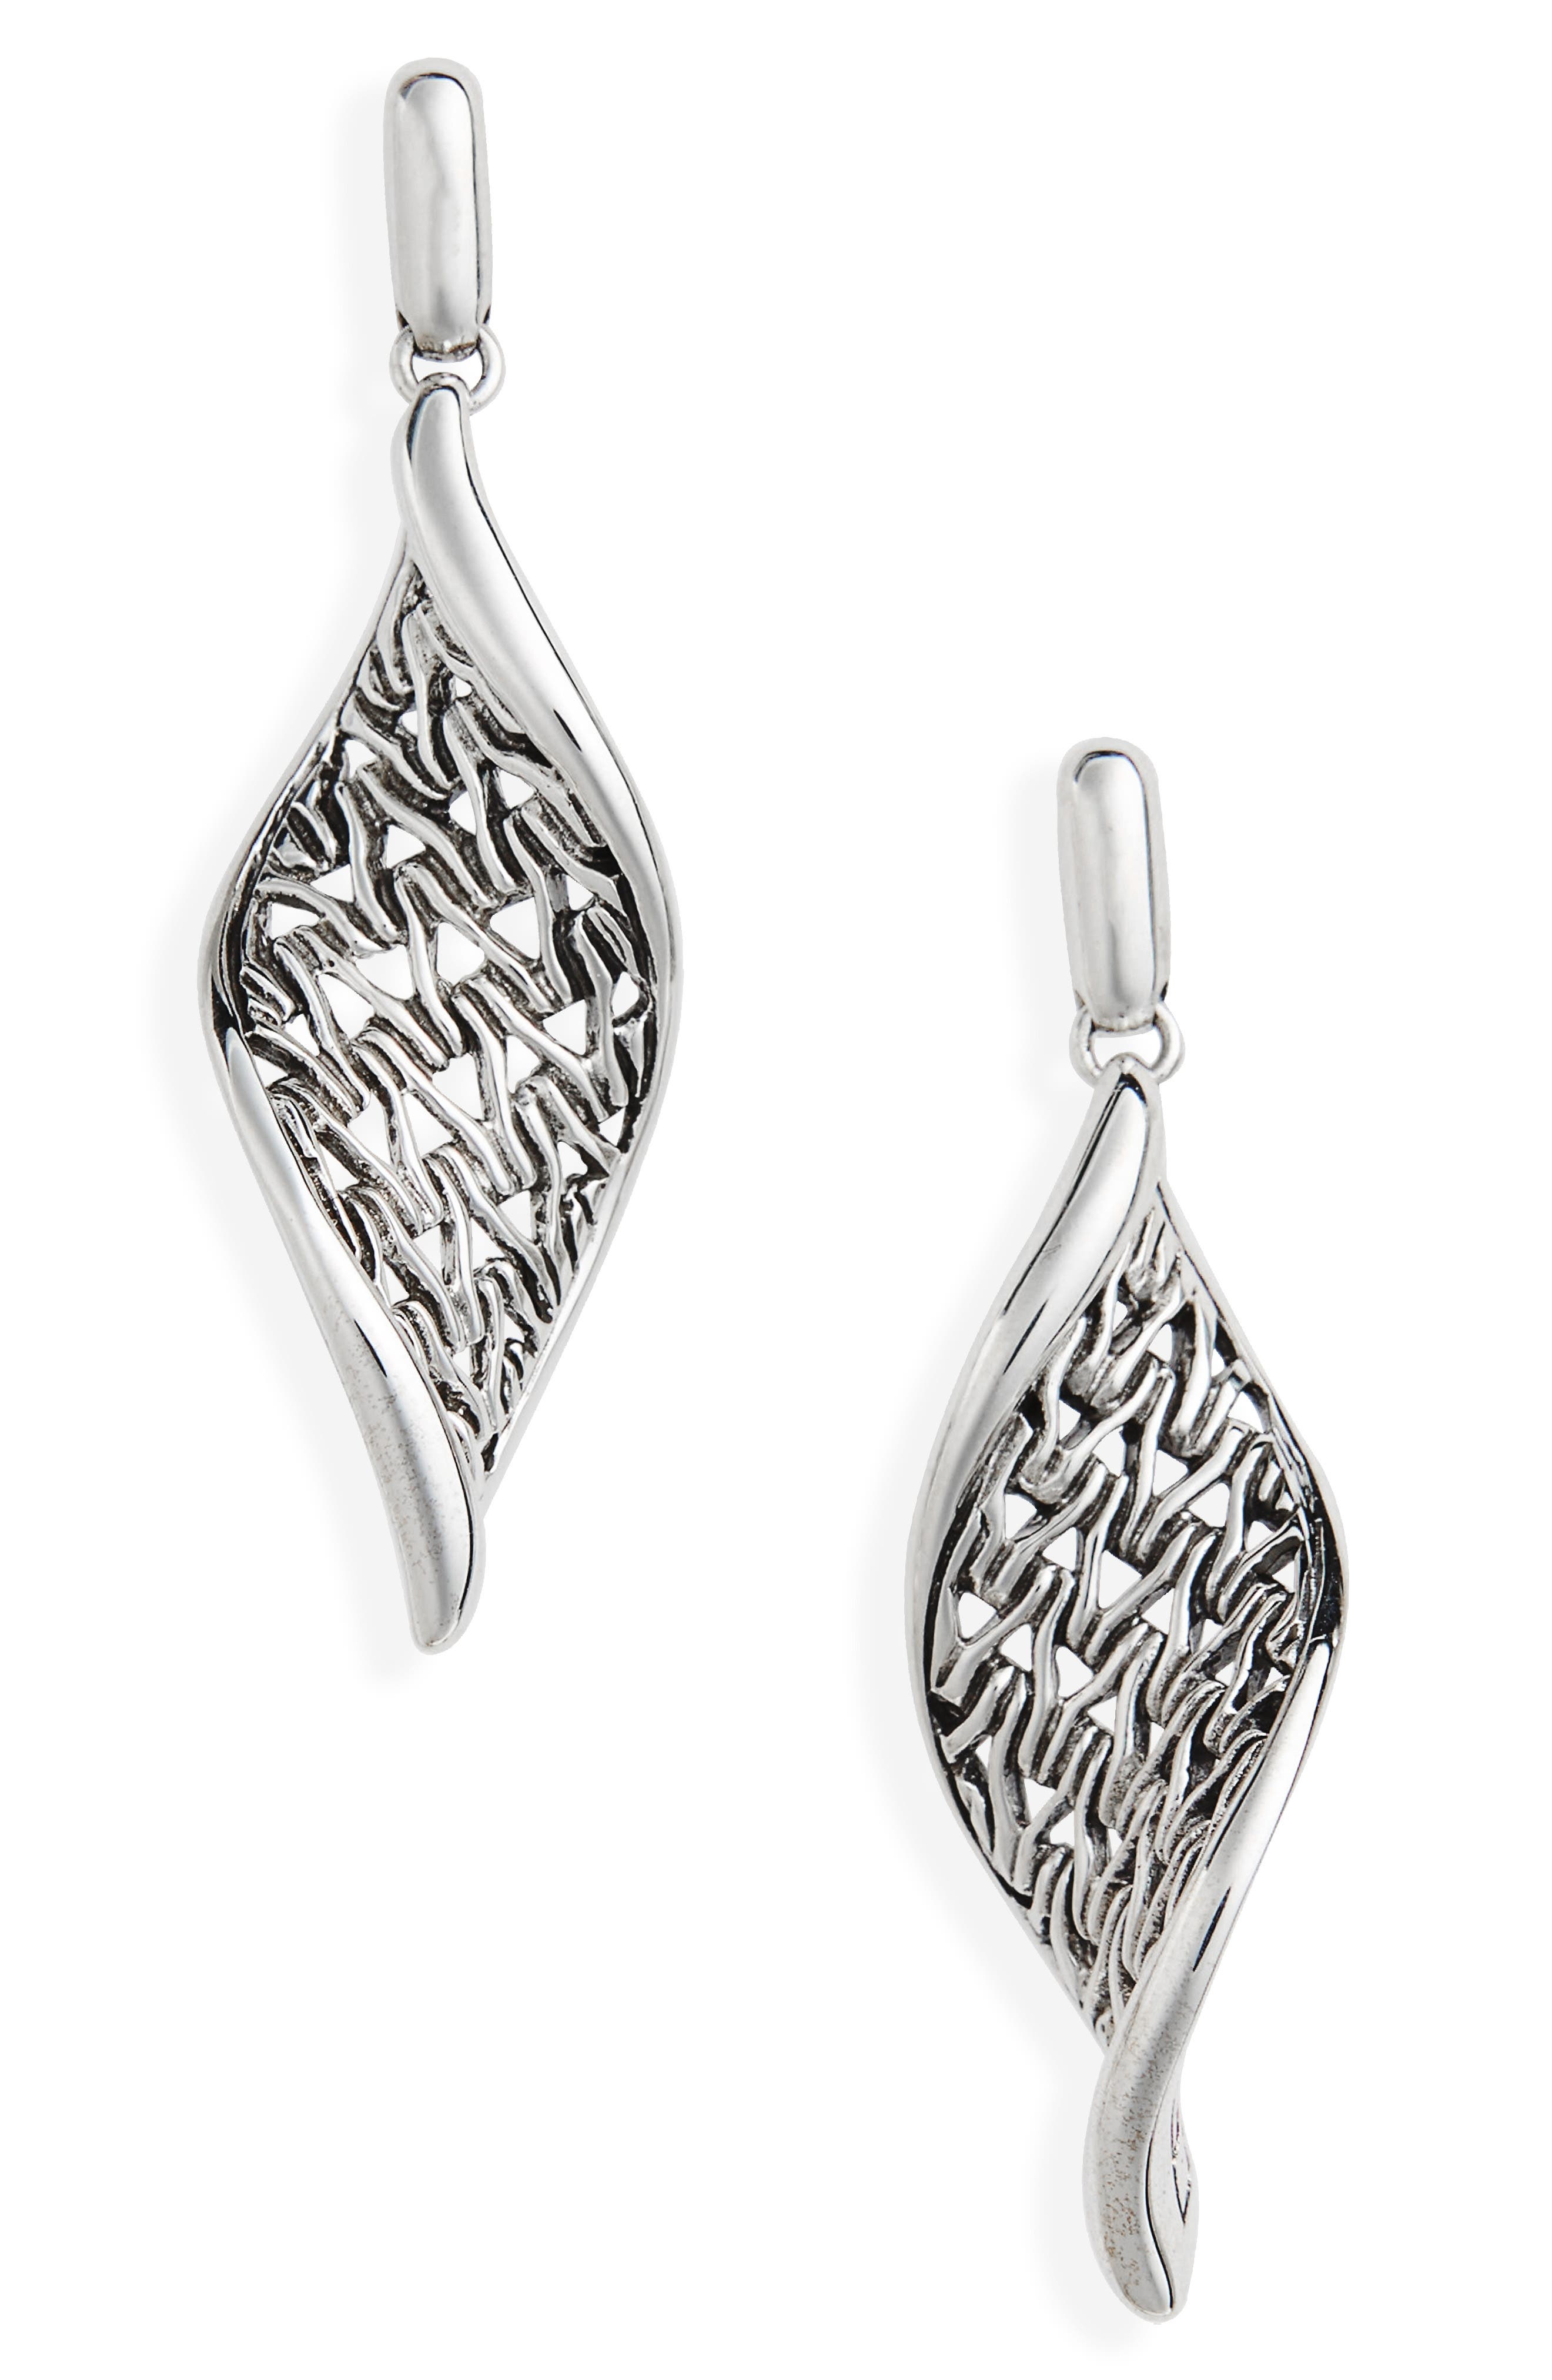 Classic Chain Wave Silver Drop Earrings,                             Main thumbnail 1, color,                             Silver